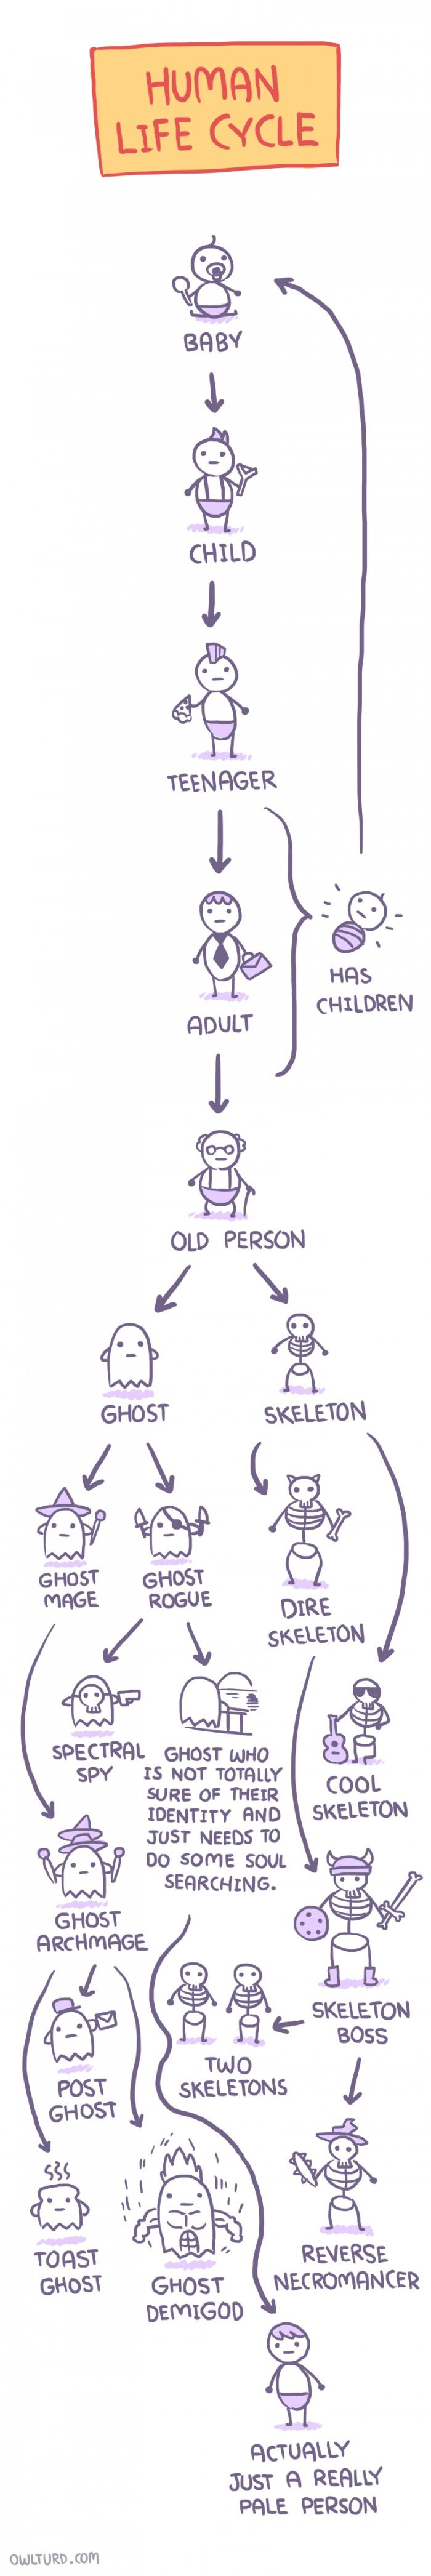 Human life cycle. . BR ipl GHOST SKELETON GHOST GHOST mesa ROGUE mg; a( Cfri, s\ GHOST we ti) SPY IS NOT romote COOL SKELETON SURE OF THEIR IDENTITY FIND JUST N